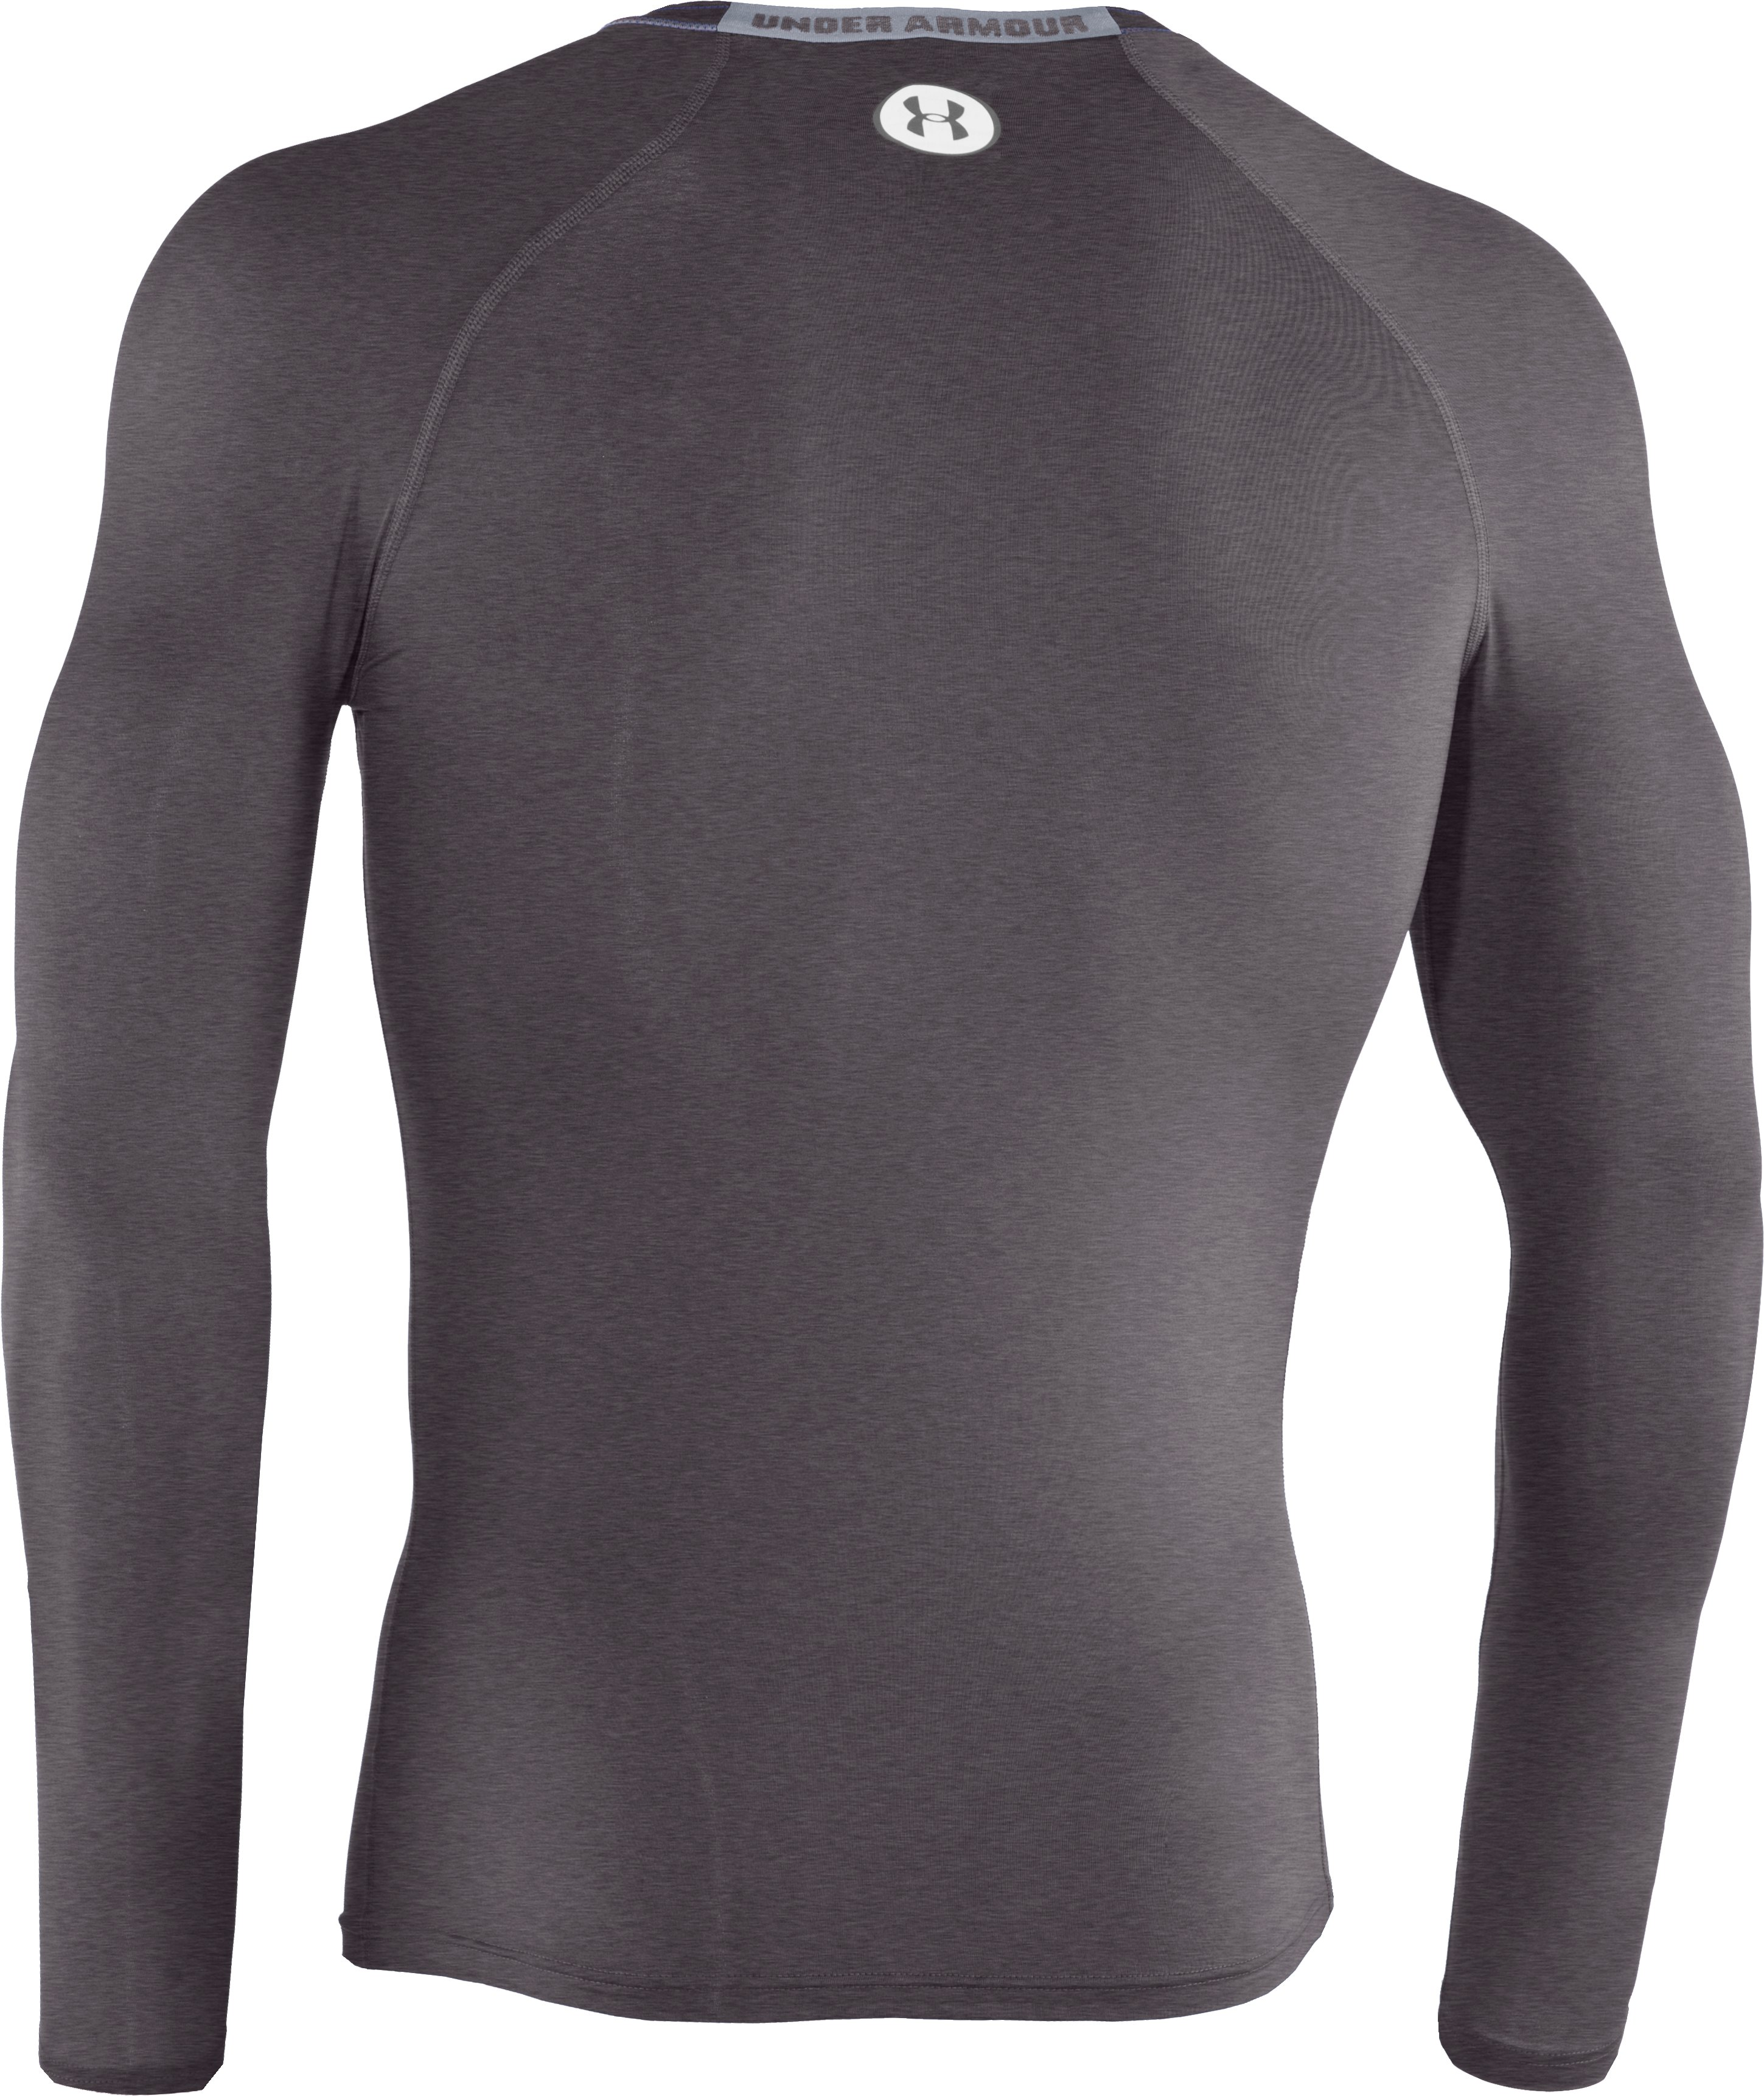 Men's HeatGear® Sonic Compression Long Sleeve, Carbon Heather,